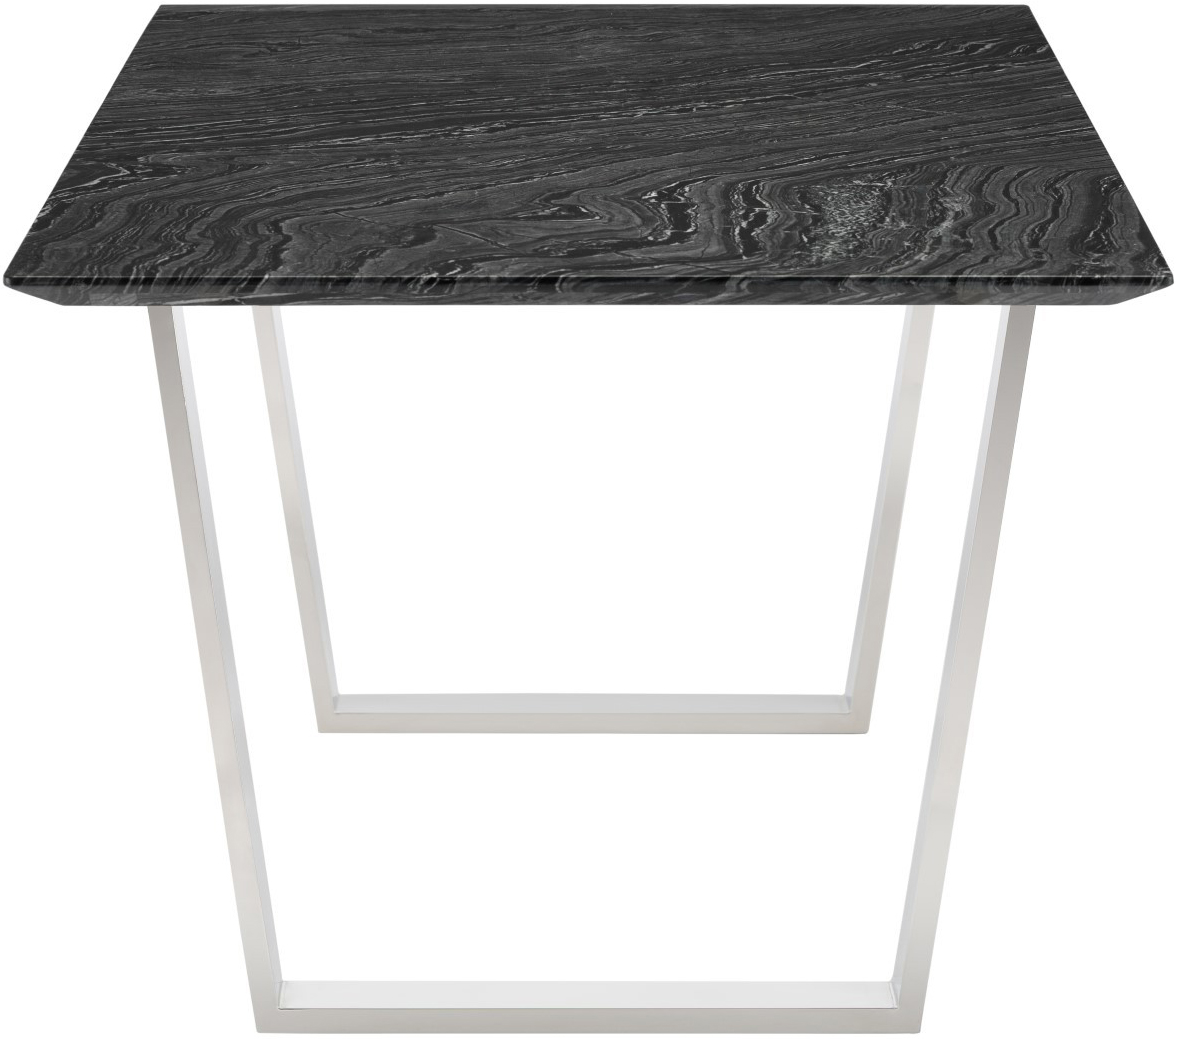 the nuevo catrine dining table black stainless steel